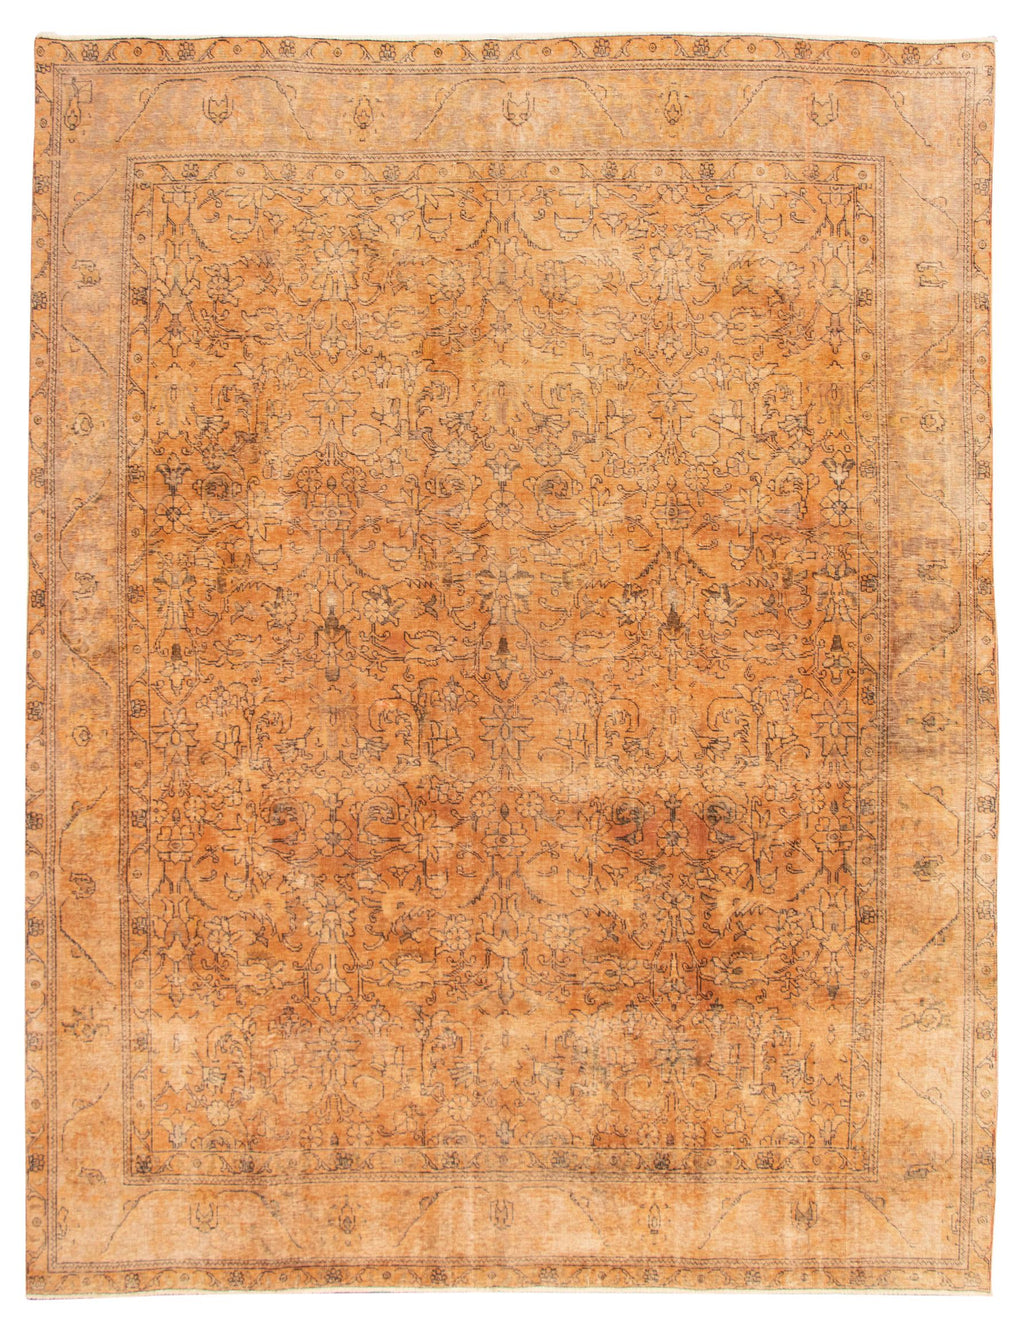 "Hand Knotted Turkish Overdyed Rug, 9'8"" x 12'6"""